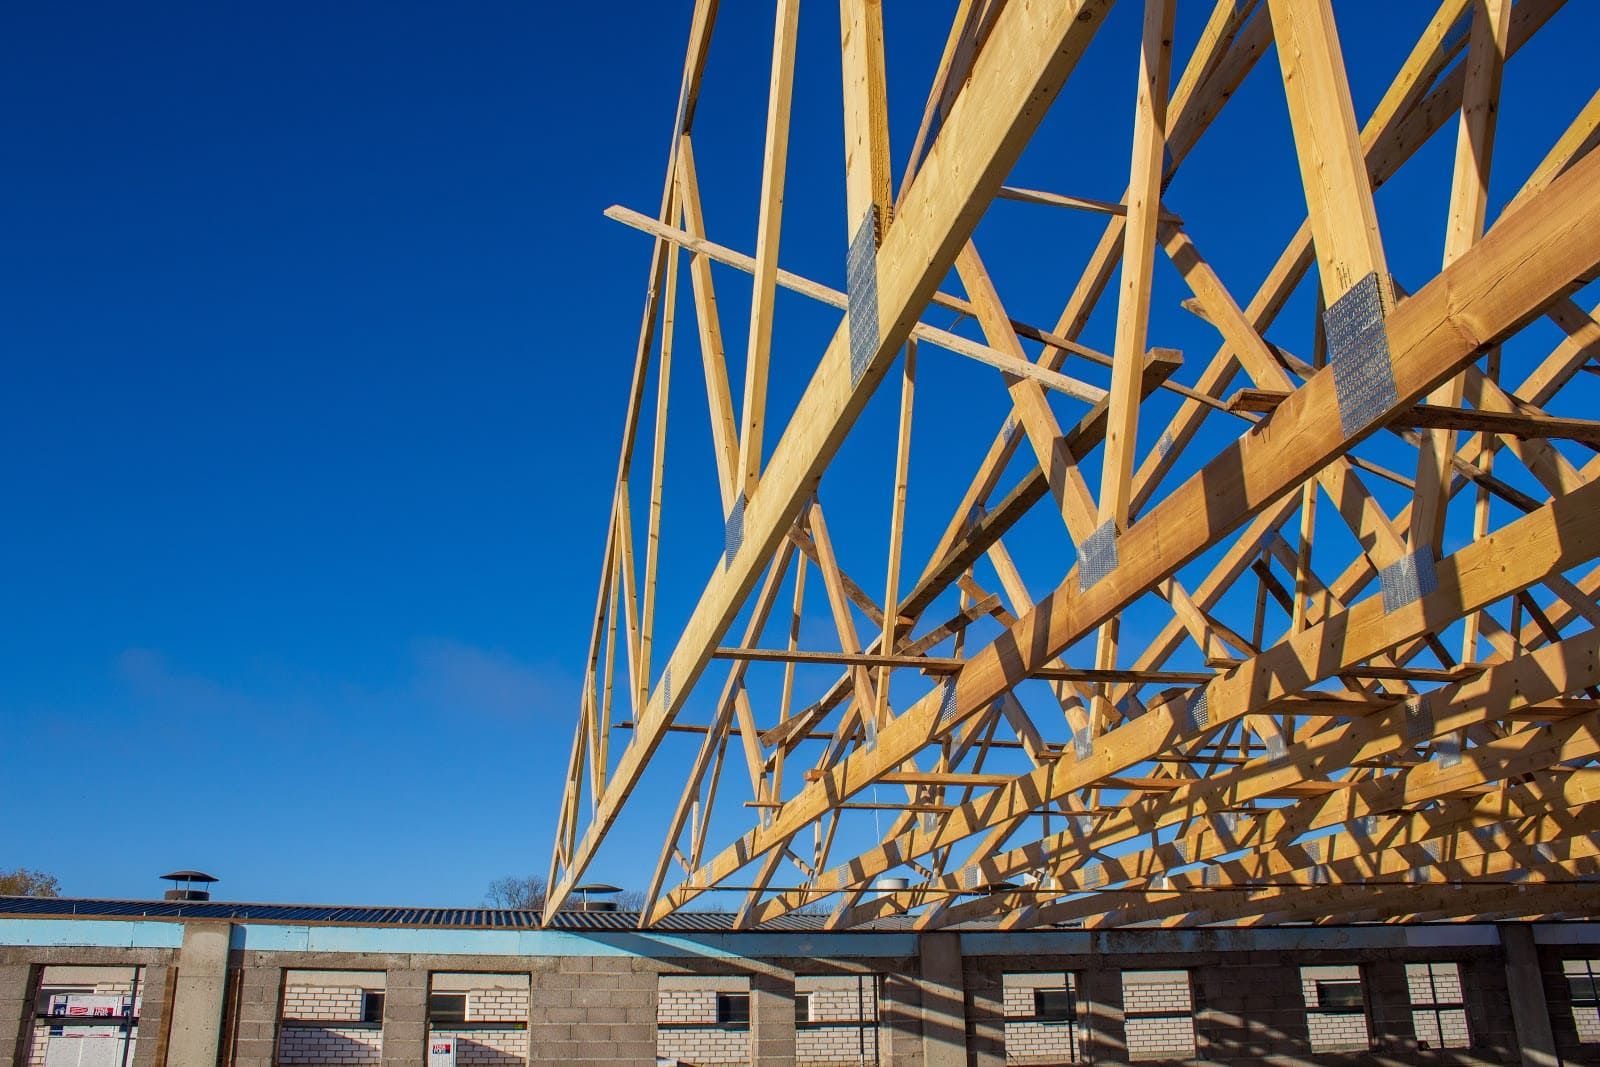 wooden truss for livestock building roof construction